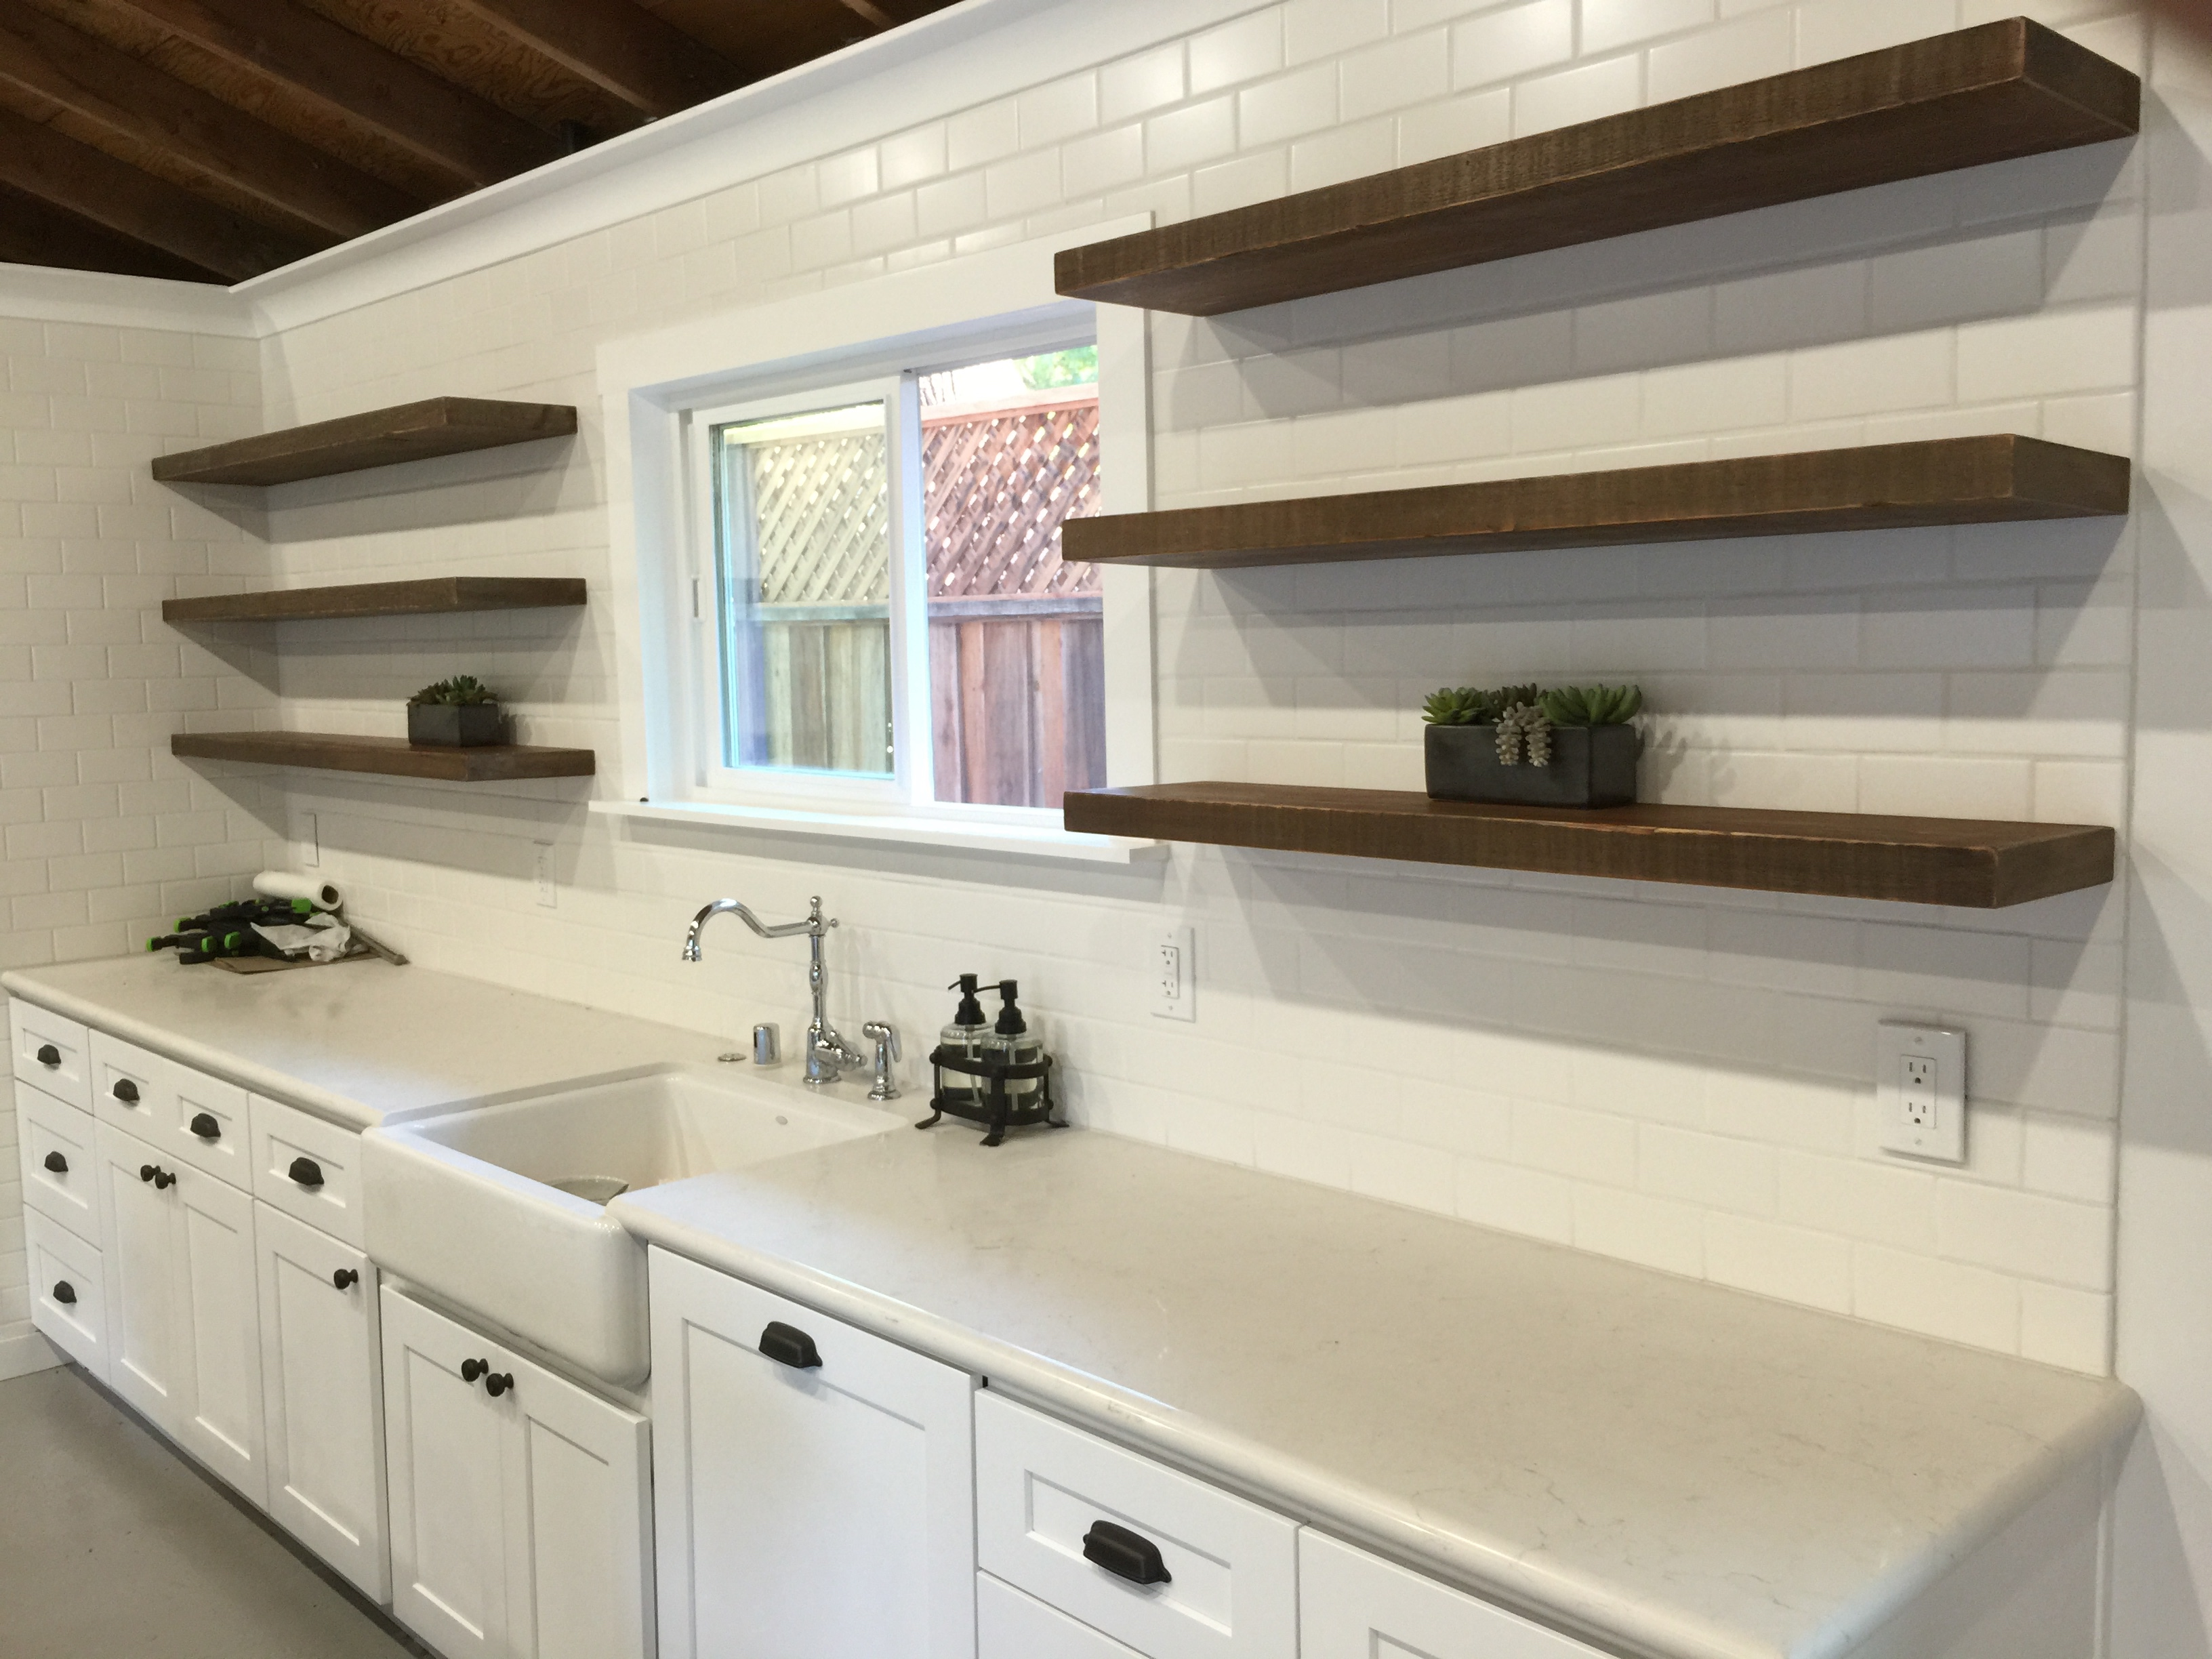 floating shelf white distressed wood hanging reclaimed shelves design for kitchen storage and shelving solutions large ikea secret small stainless steel garage organizers average